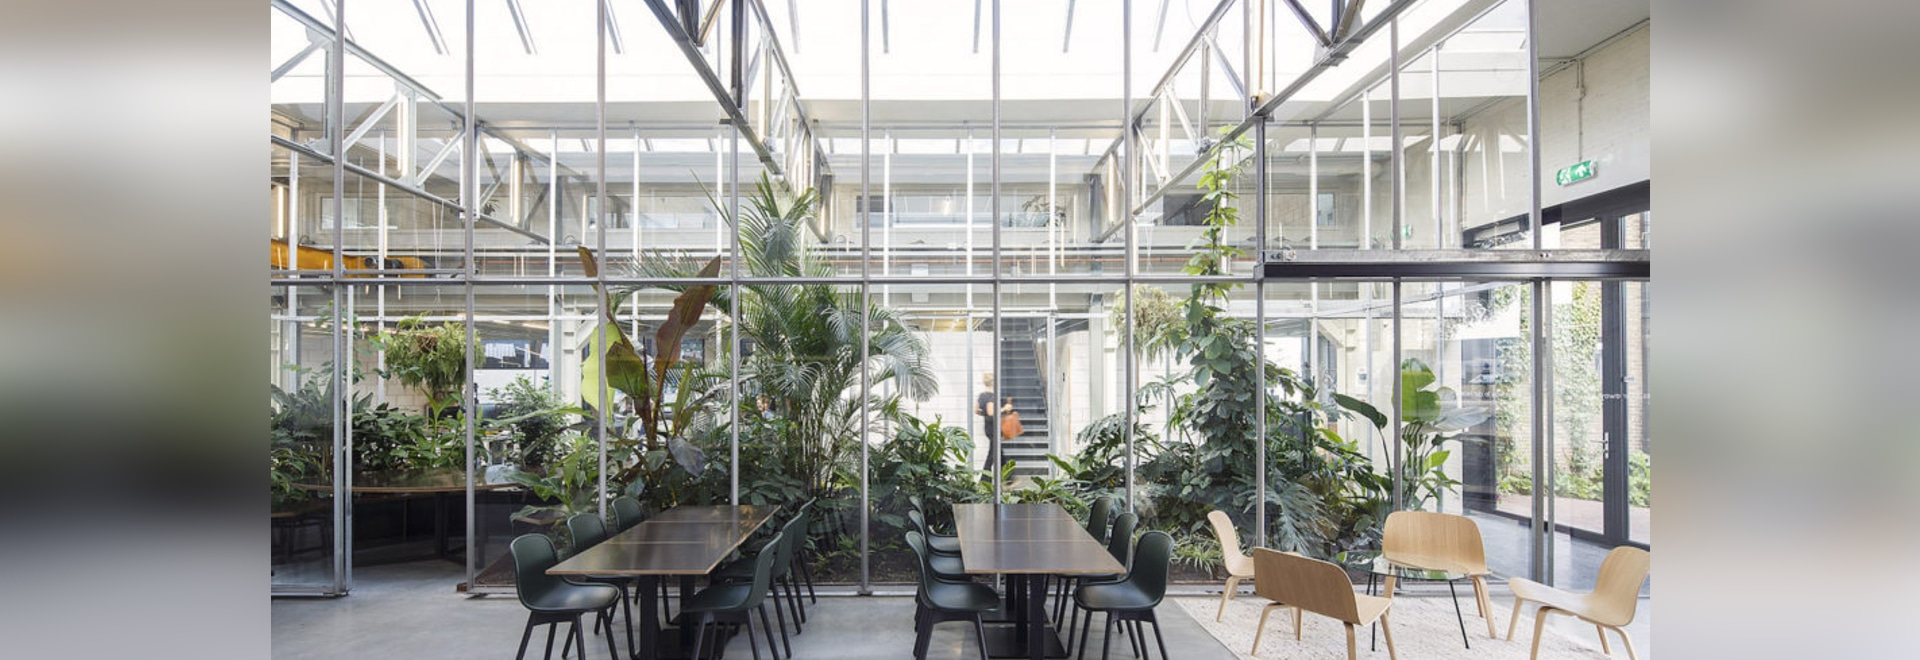 Nature-filled office takes over a former factory building in Amsterdam-Noord